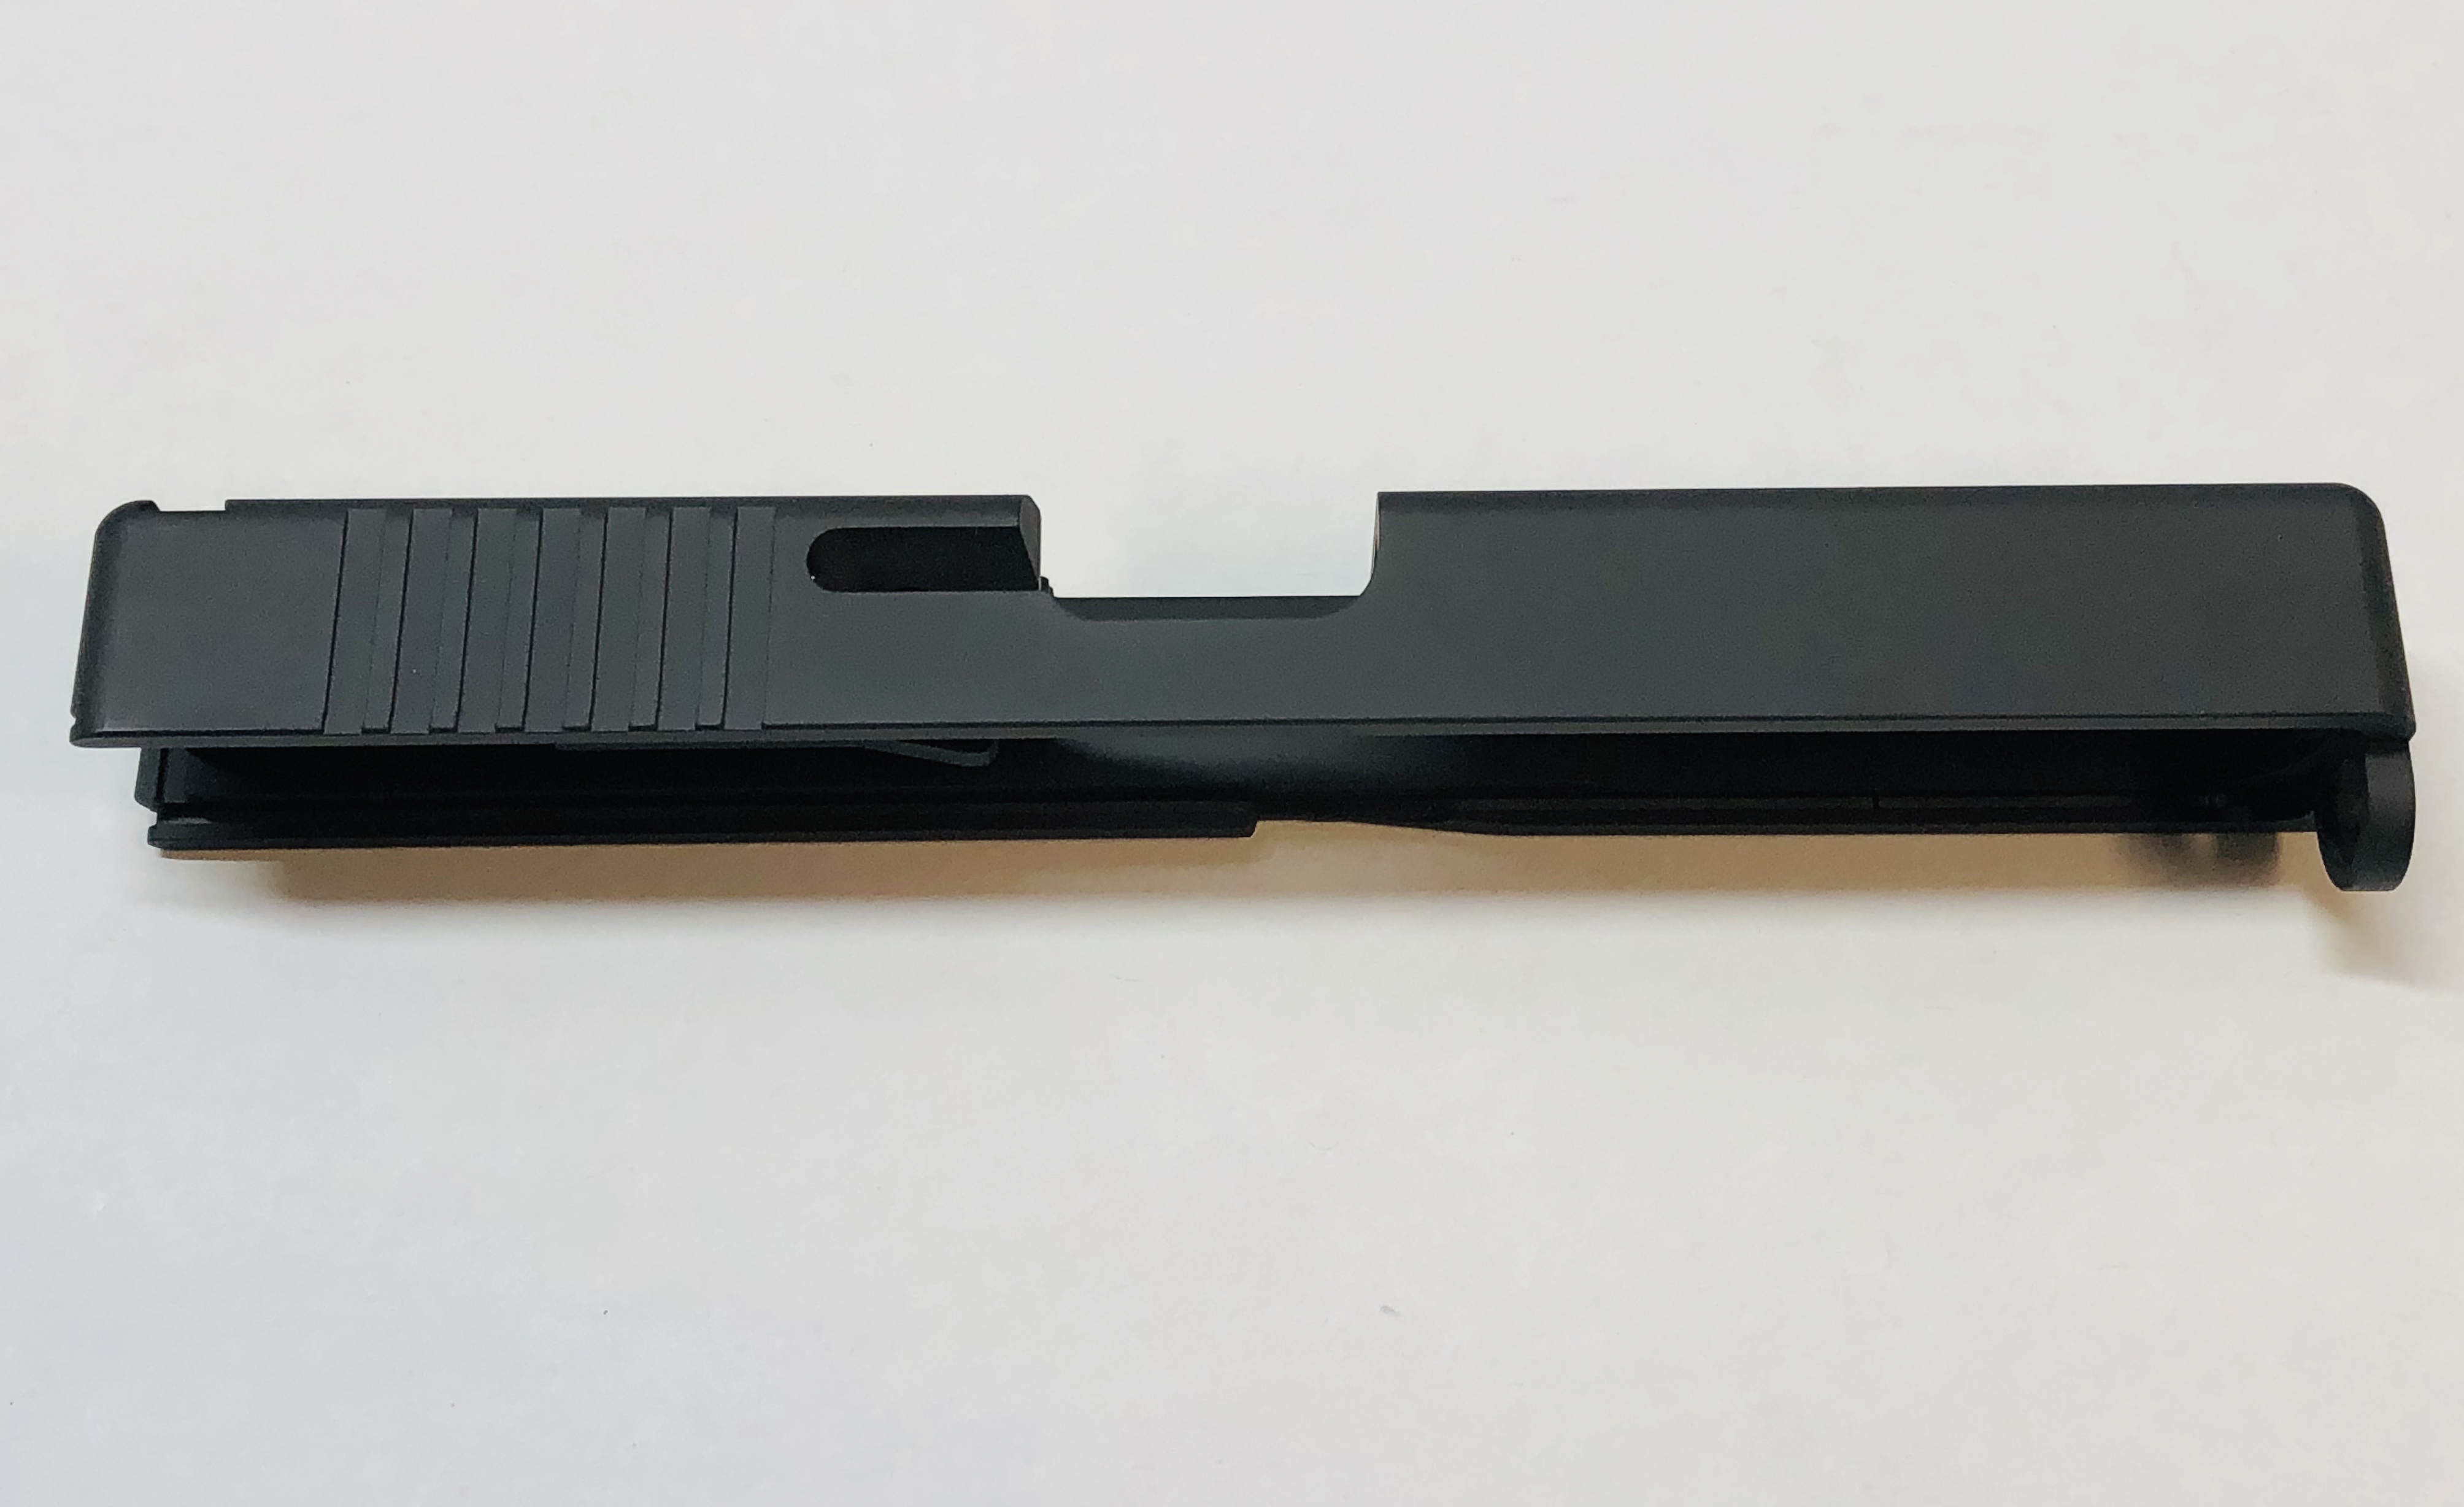 For GLOCK 17 - 9mm OEM STYLE - GEN 3 - fits gen 1,2,3 and also 4 with guide rod slide adaptor.